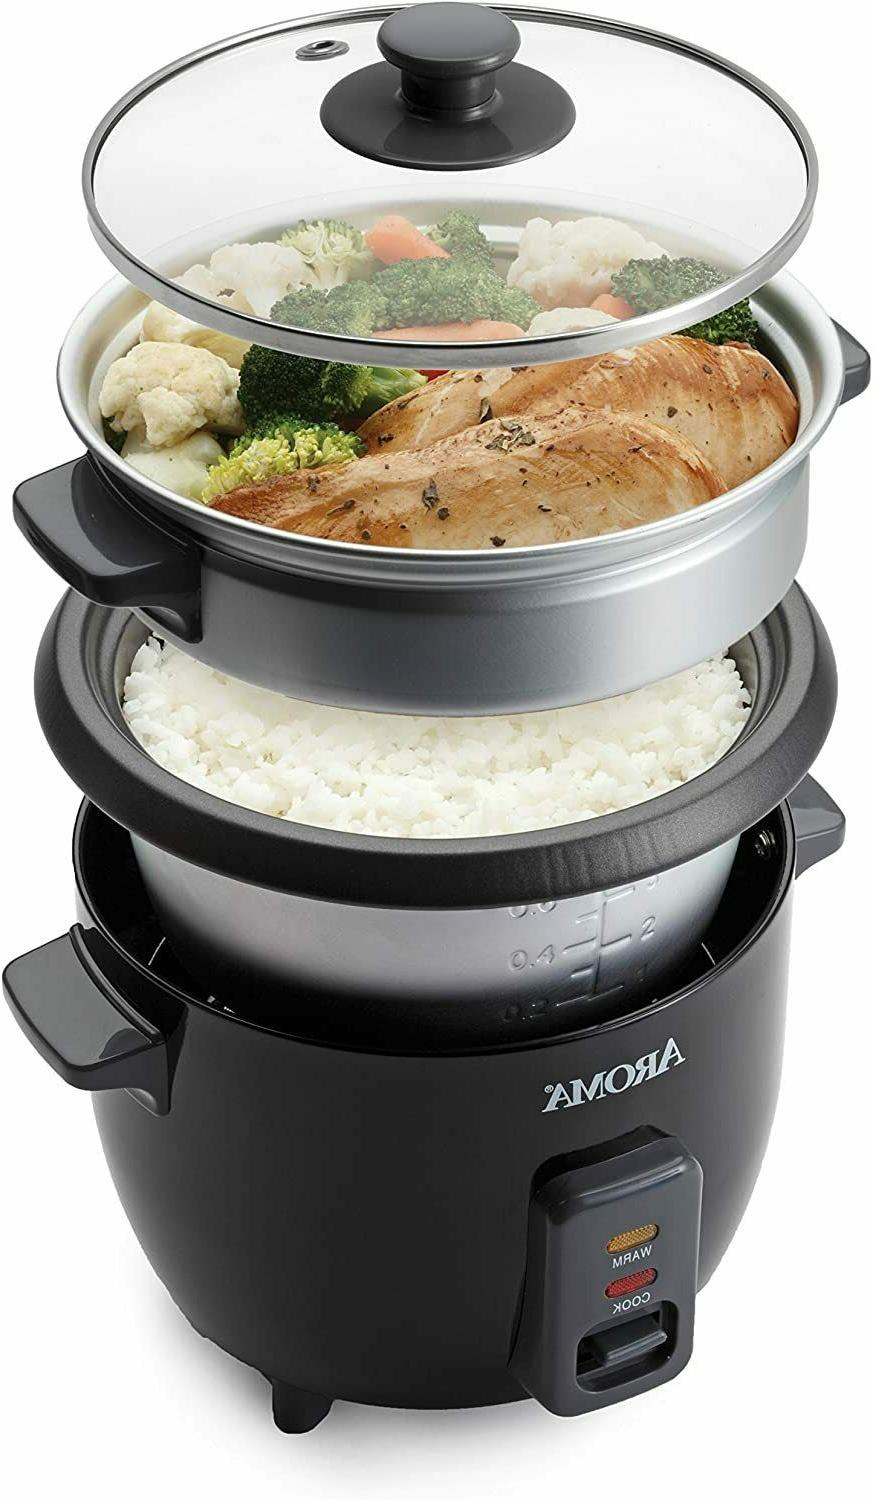 2-6 Cups Rice cooker Silver Housewares